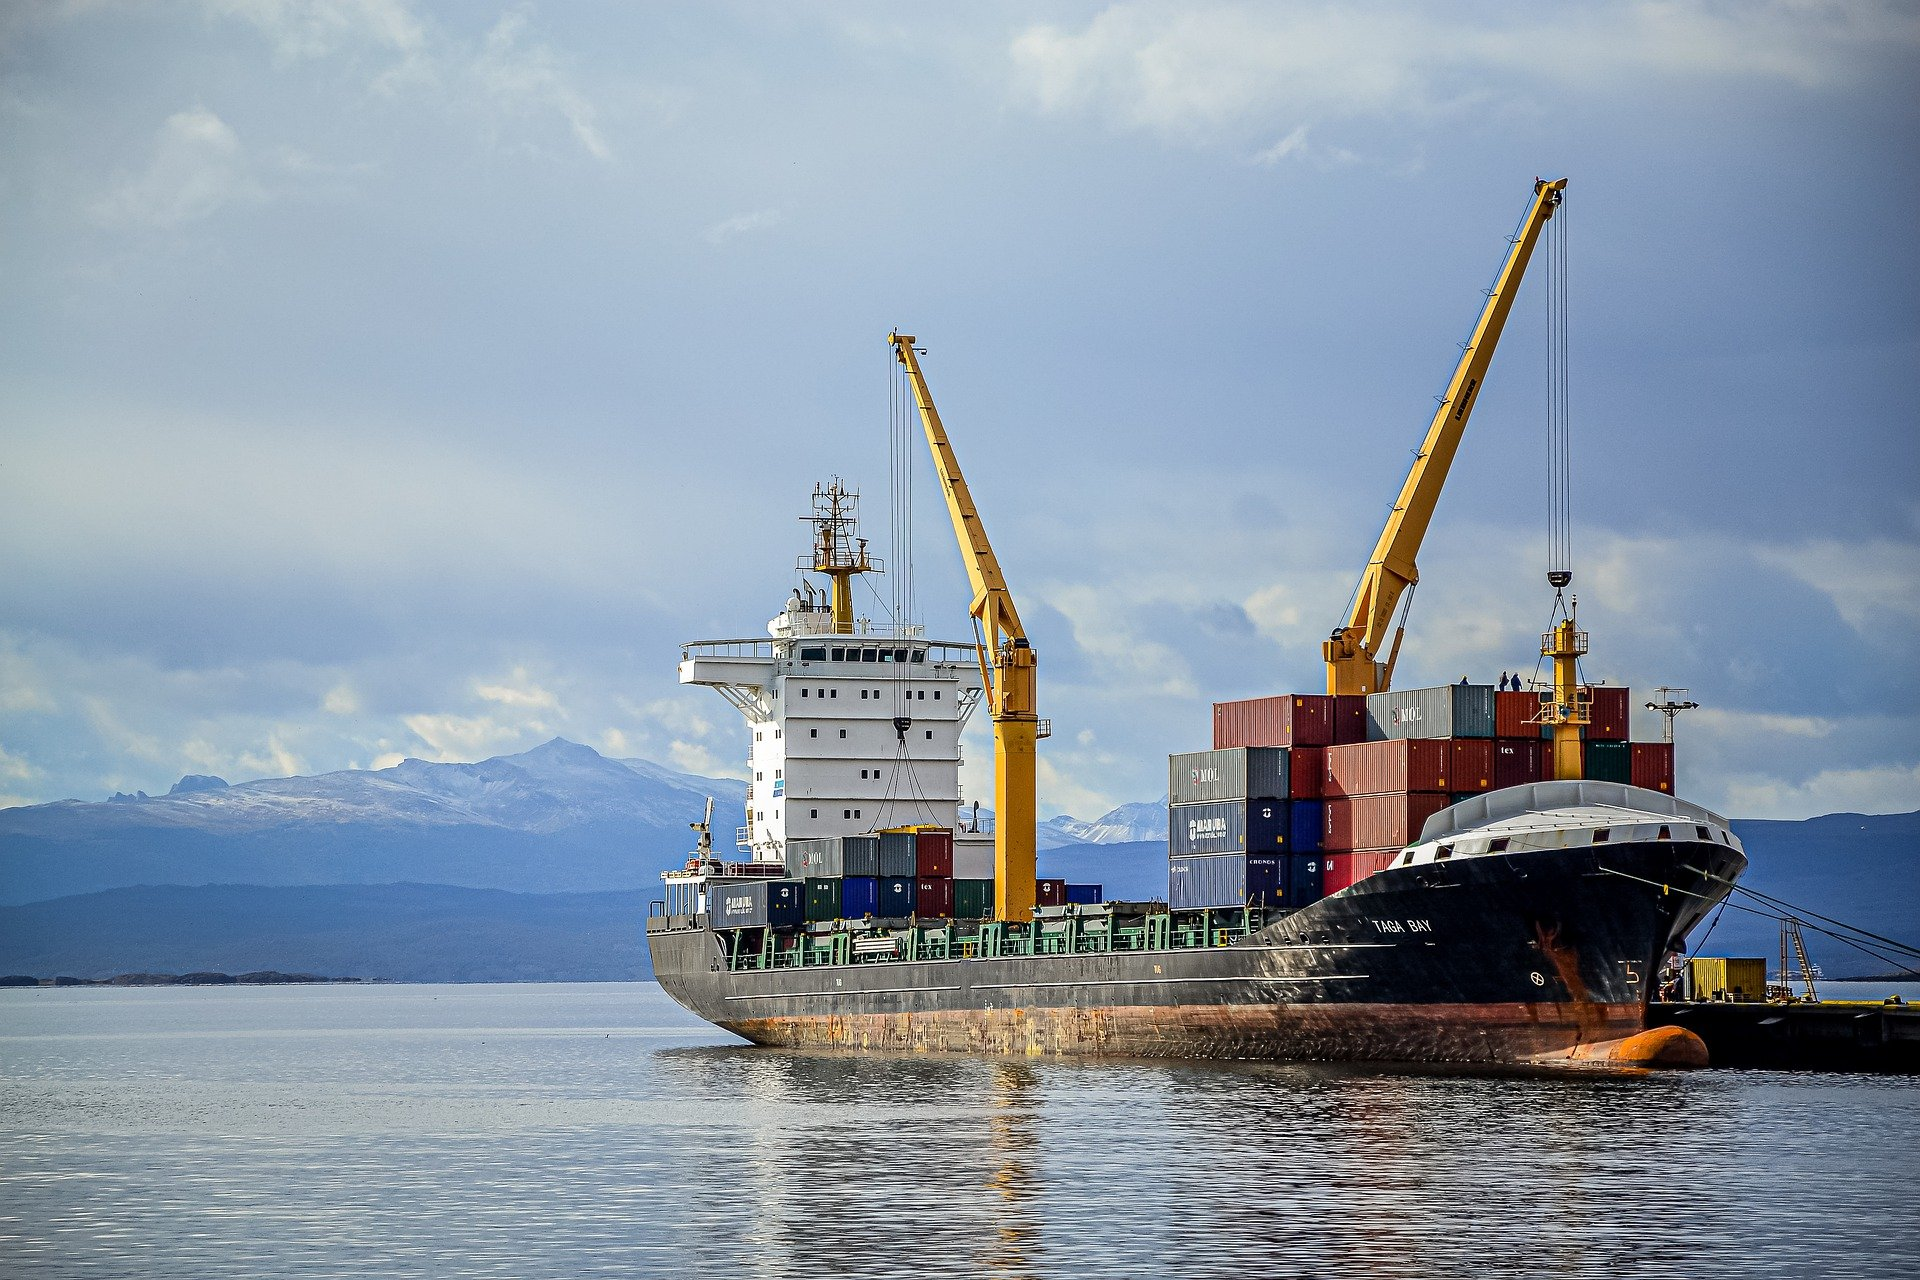 NIC reliefs set for Freeports